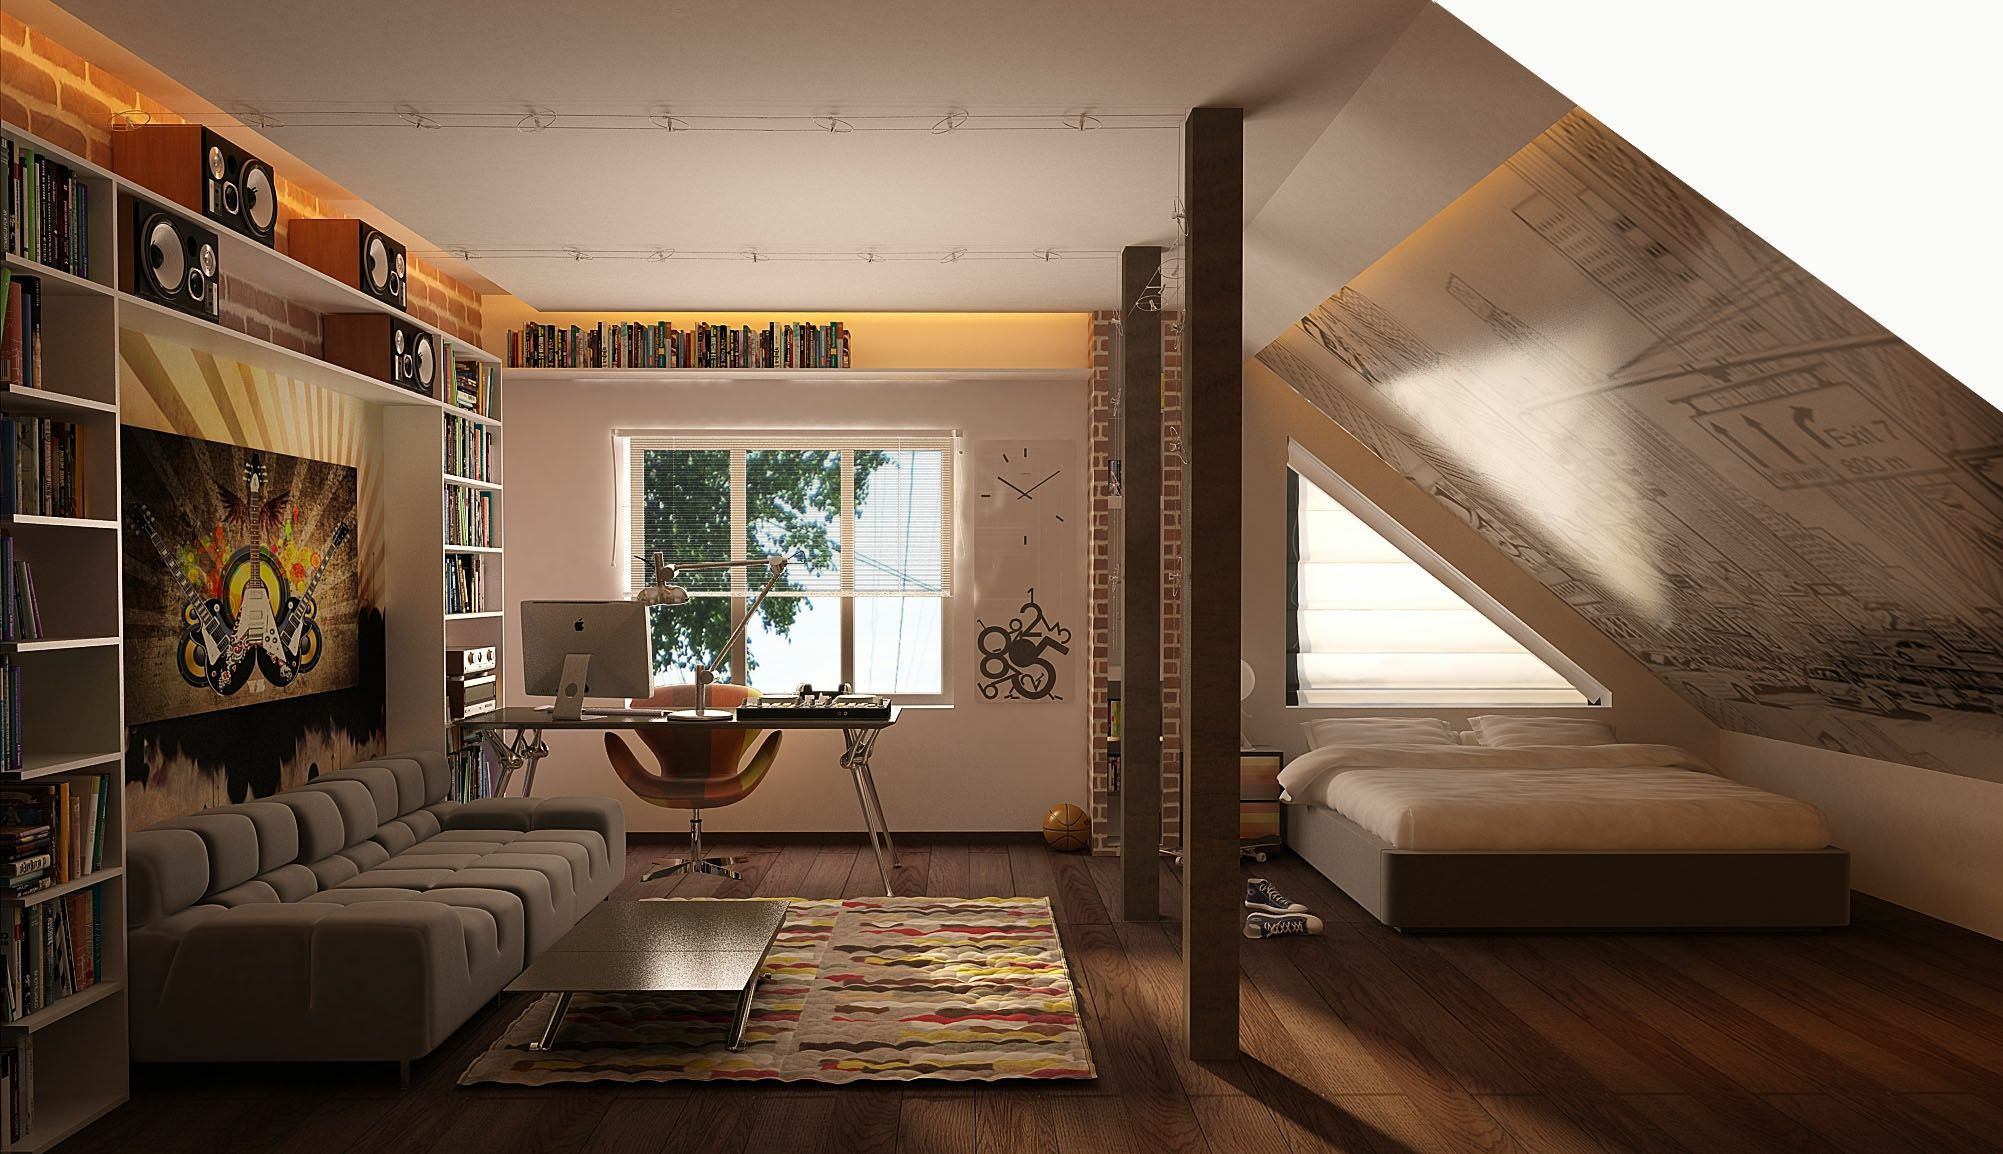 Small Attic Room Ideas small attic ideas | design for small home office 01 attic